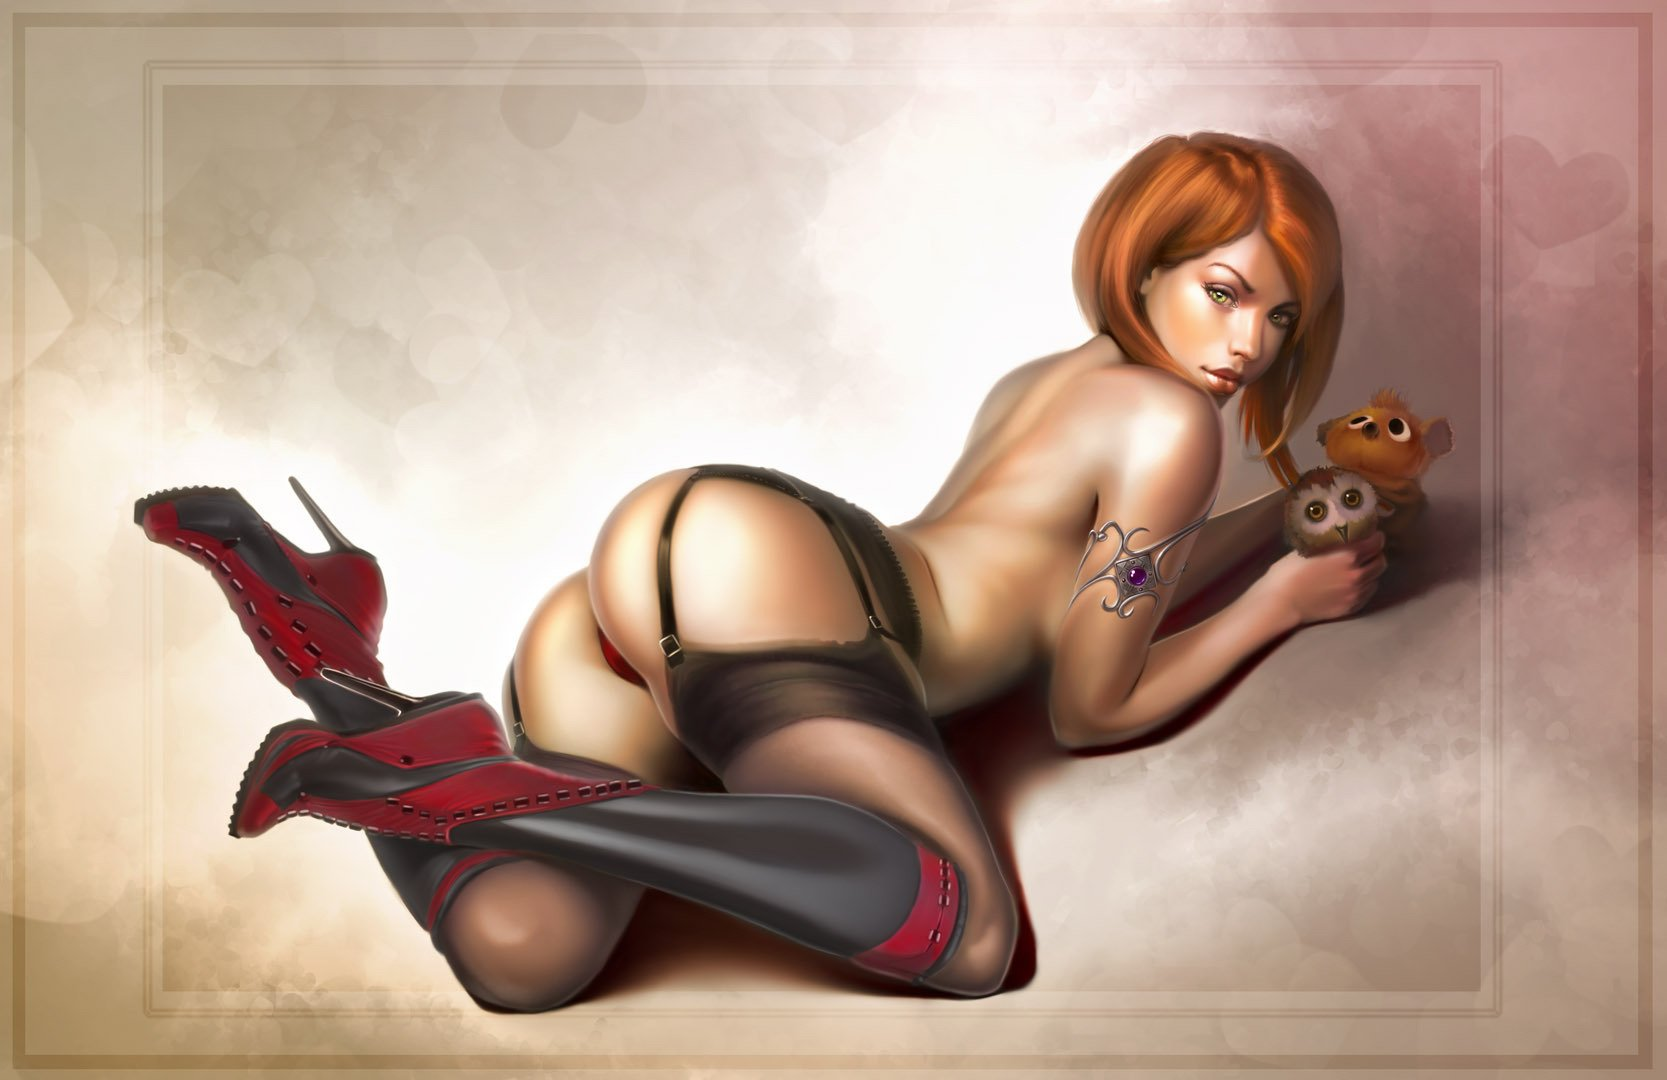 Artwork Pinup Girl Pulsarmedia Wallpaper Wallpaper